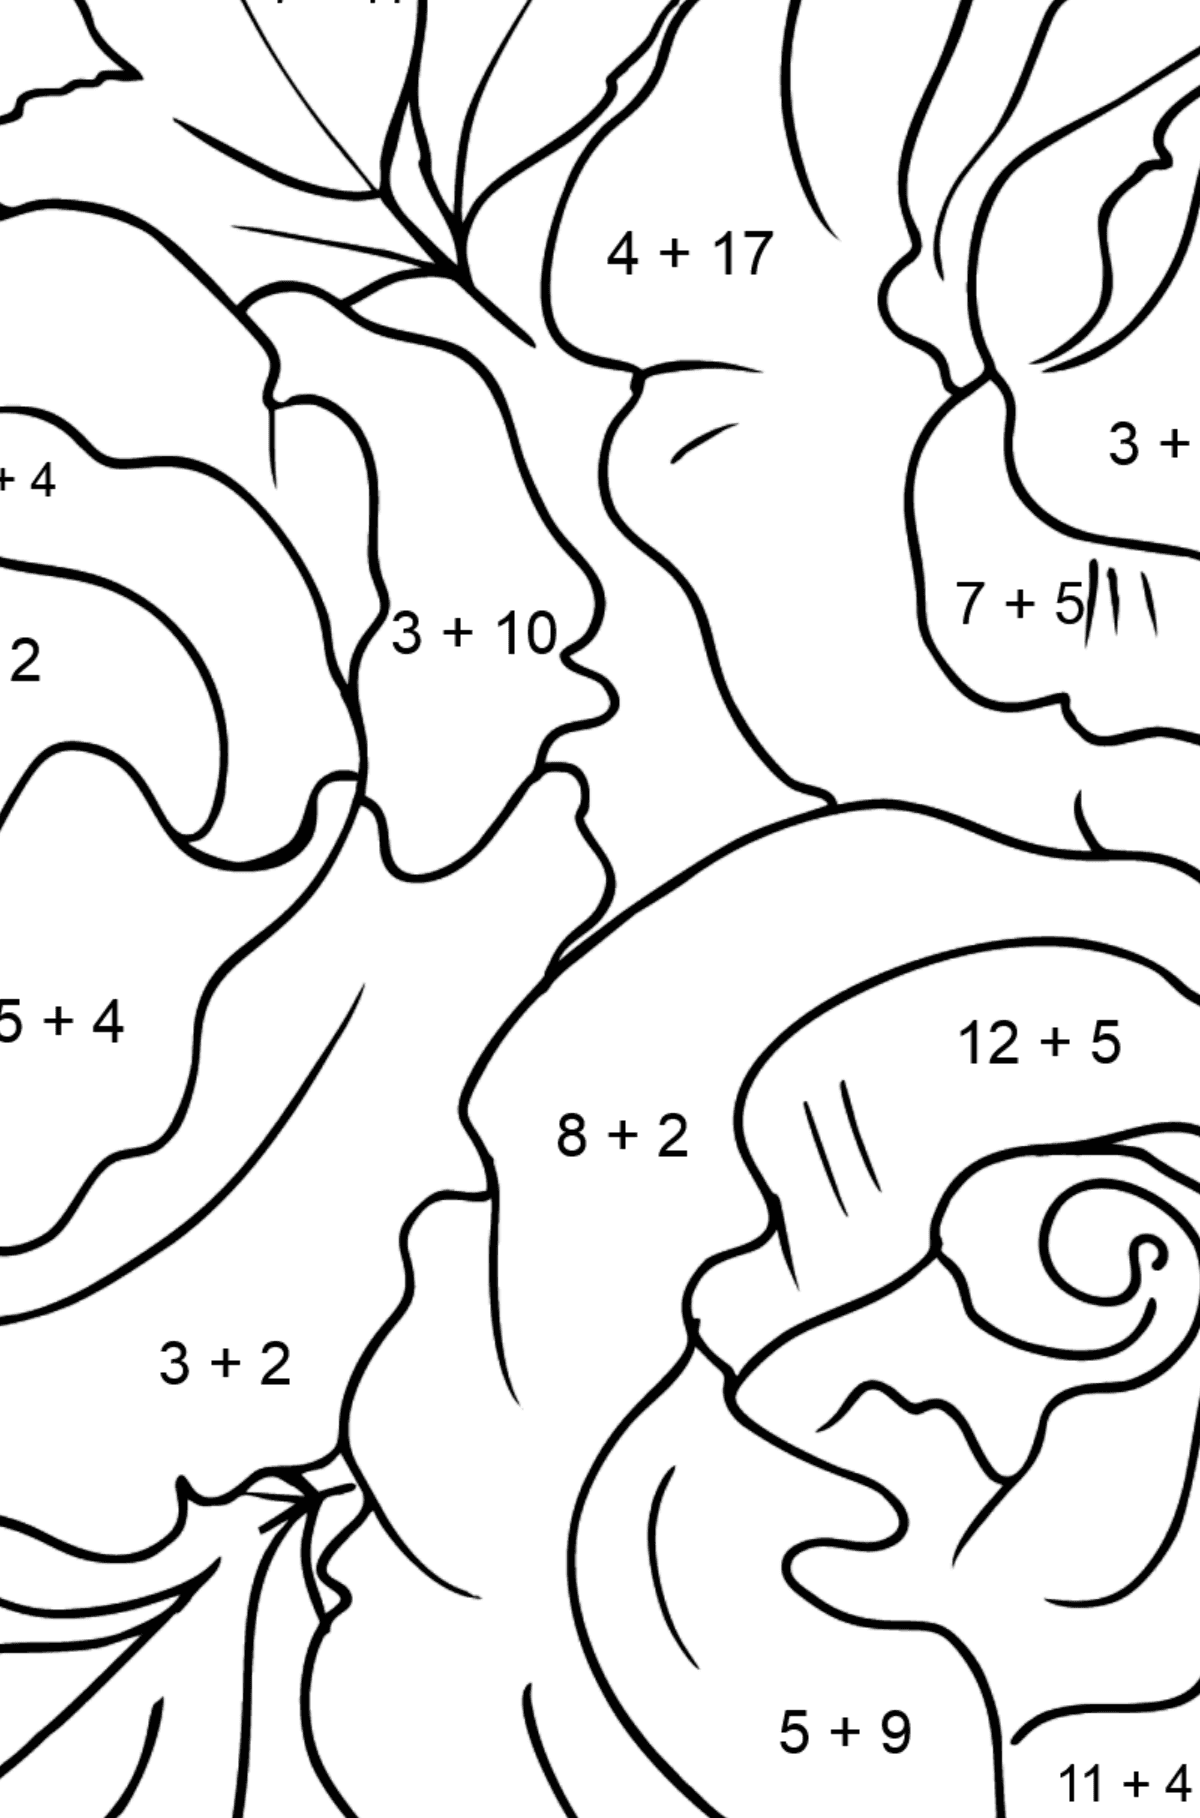 Roses Coloring Page - Math Coloring - Addition for Kids